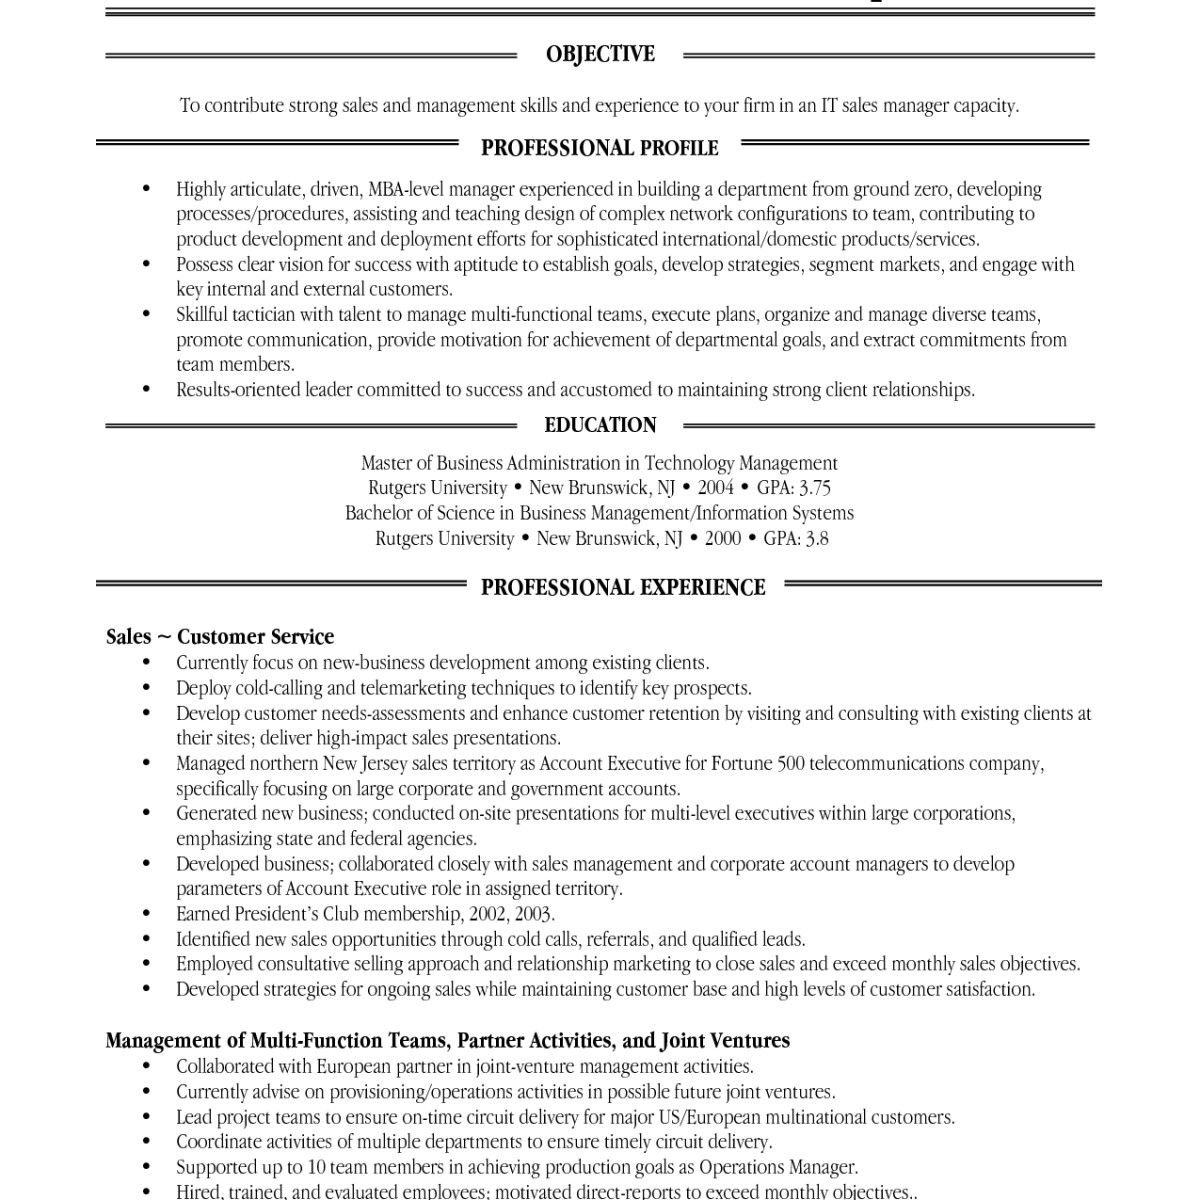 chrono functional resume template Collection-Resume Templatestupendous Functional Format For Canada Joblers from Chrono Functional Resume Template source brackettvillefo 6-q